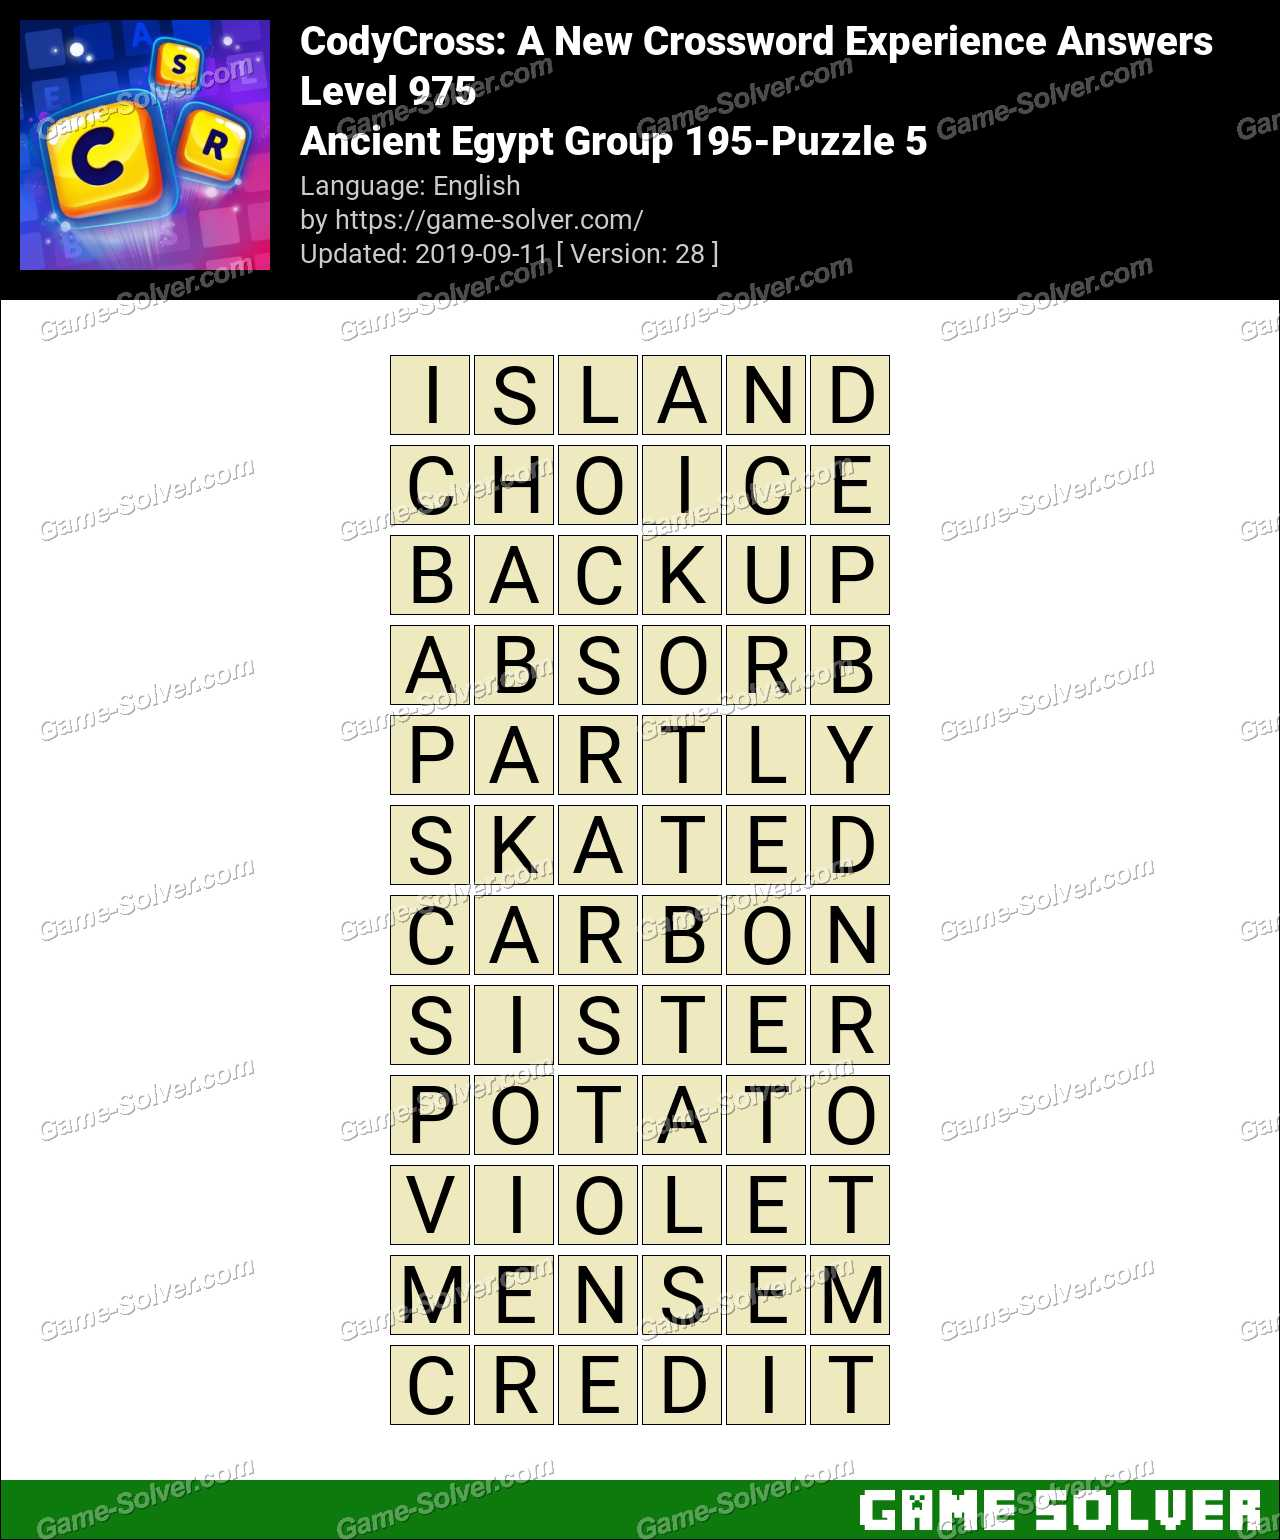 CodyCross Ancient Egypt Group 195-Puzzle 5 Answers